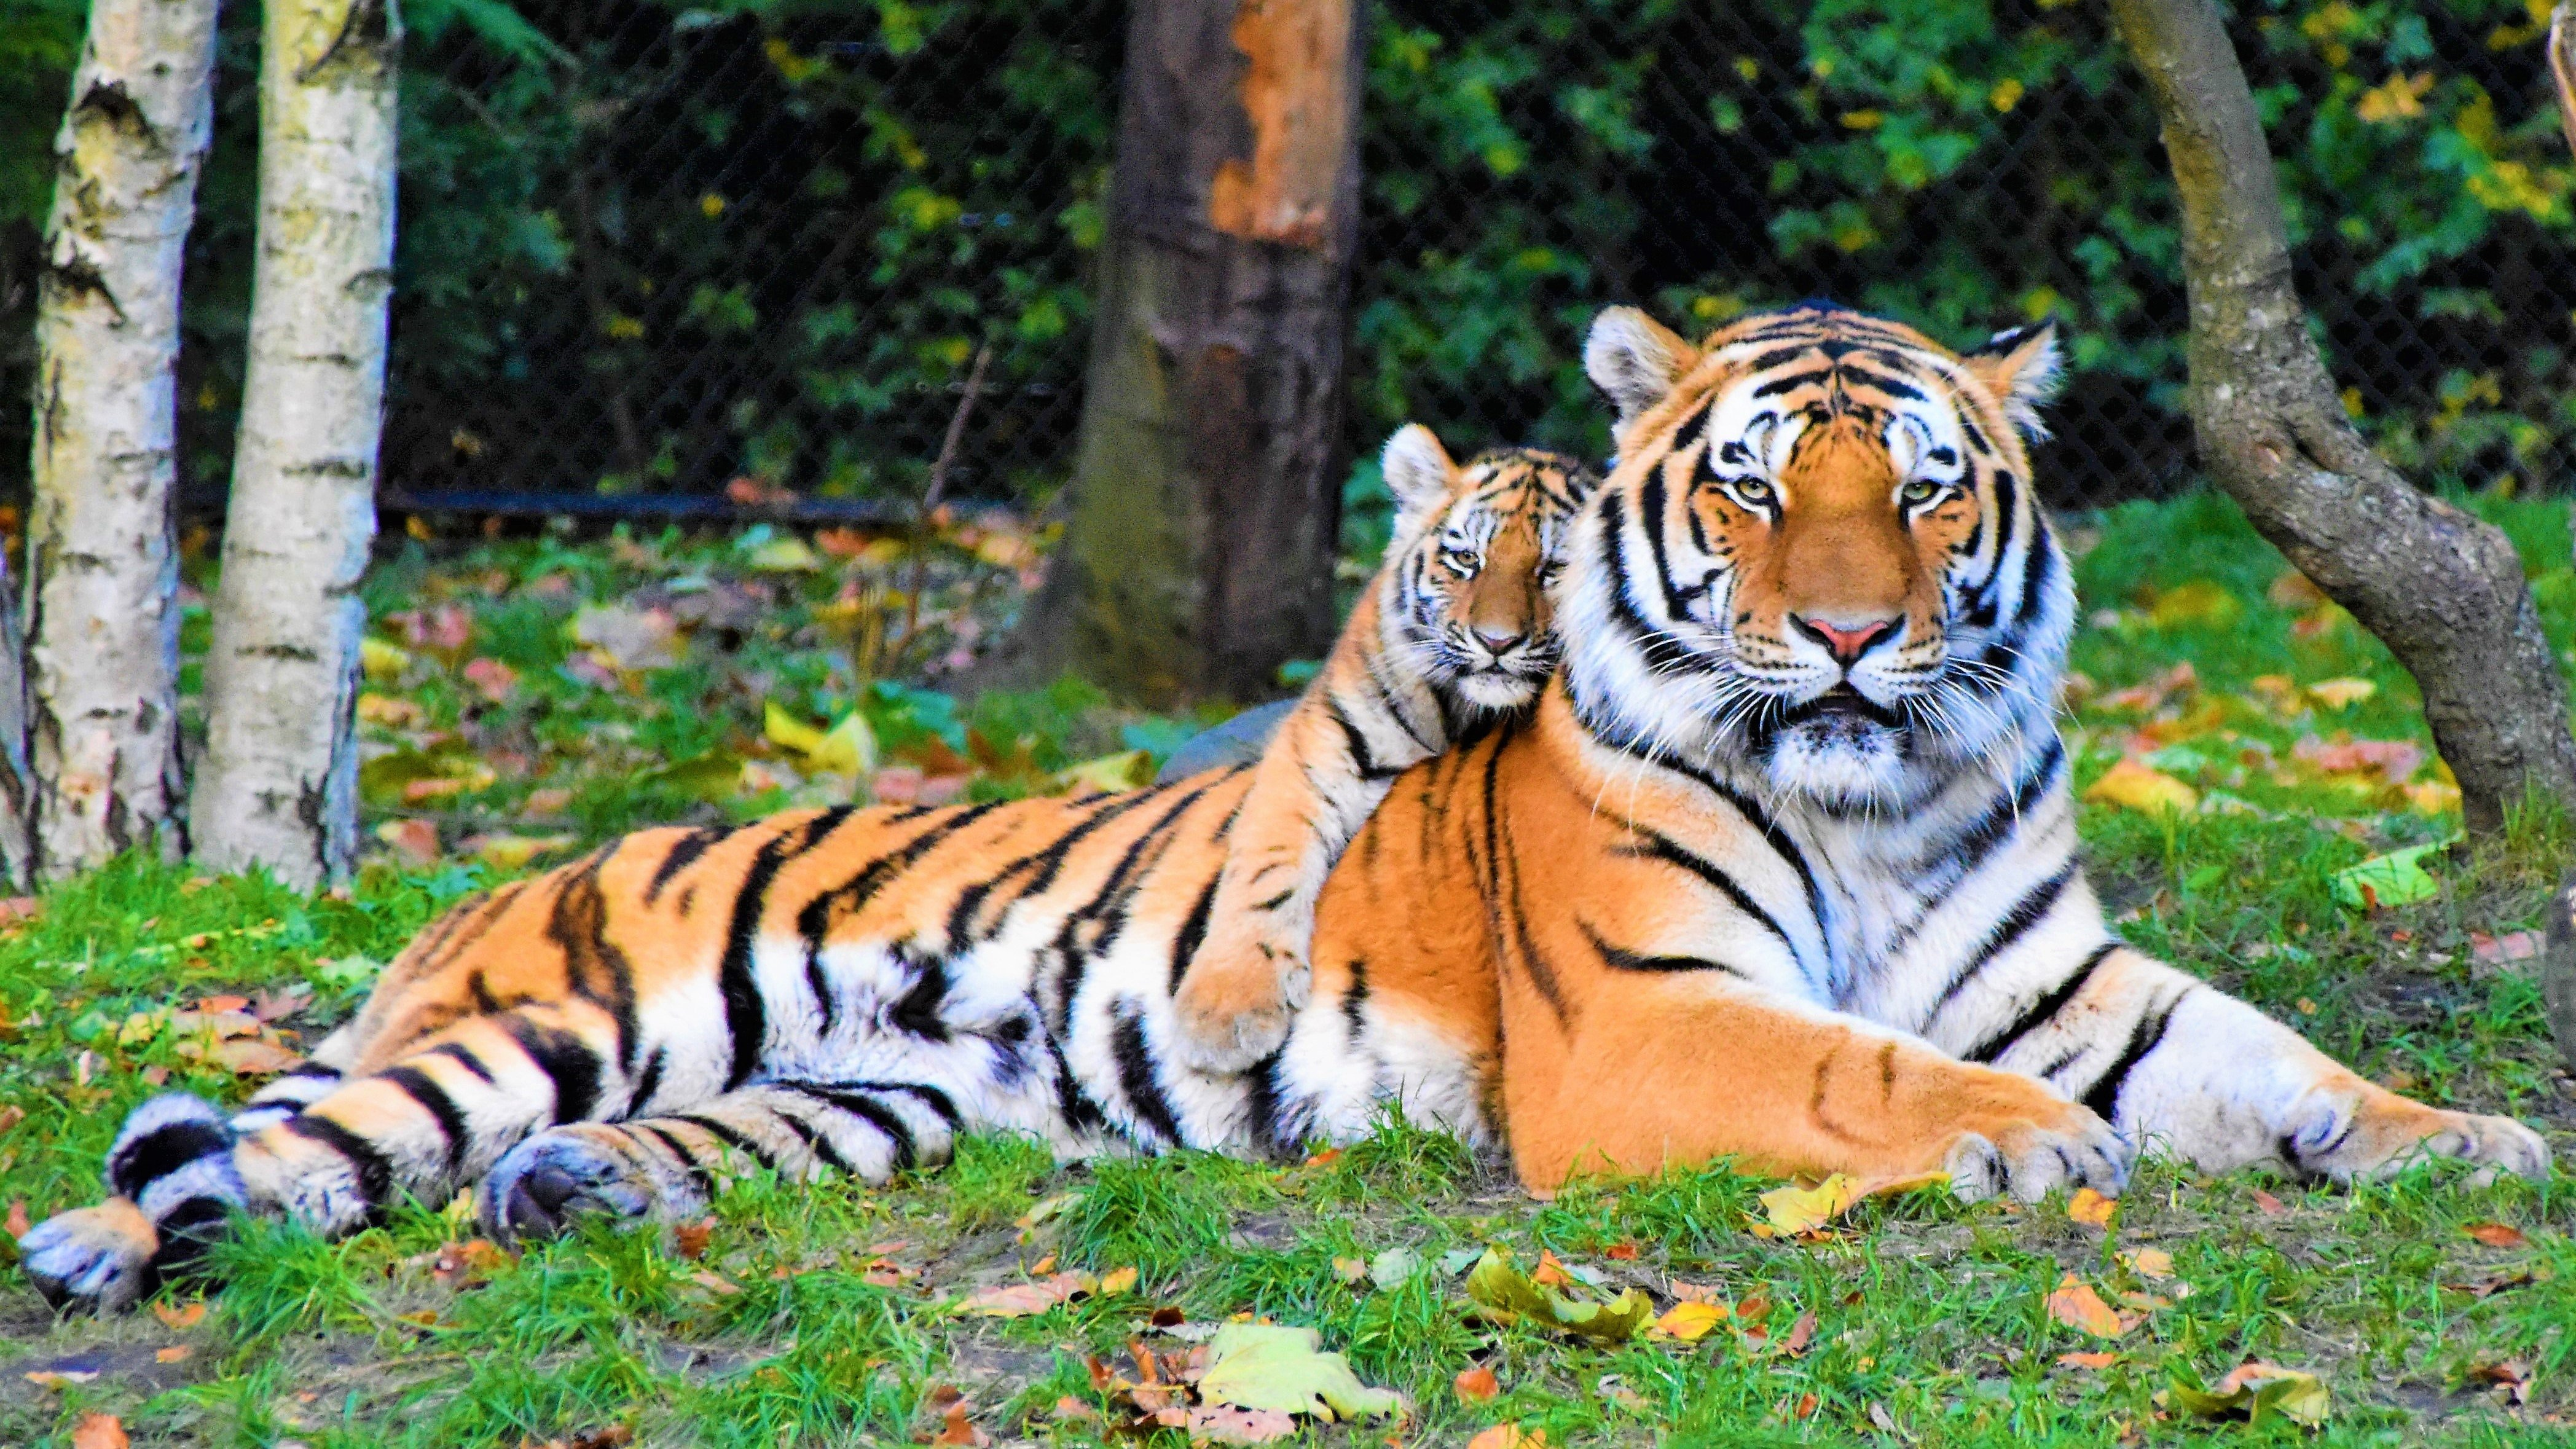 Picture of tigers in a park | Photo: Pixabay